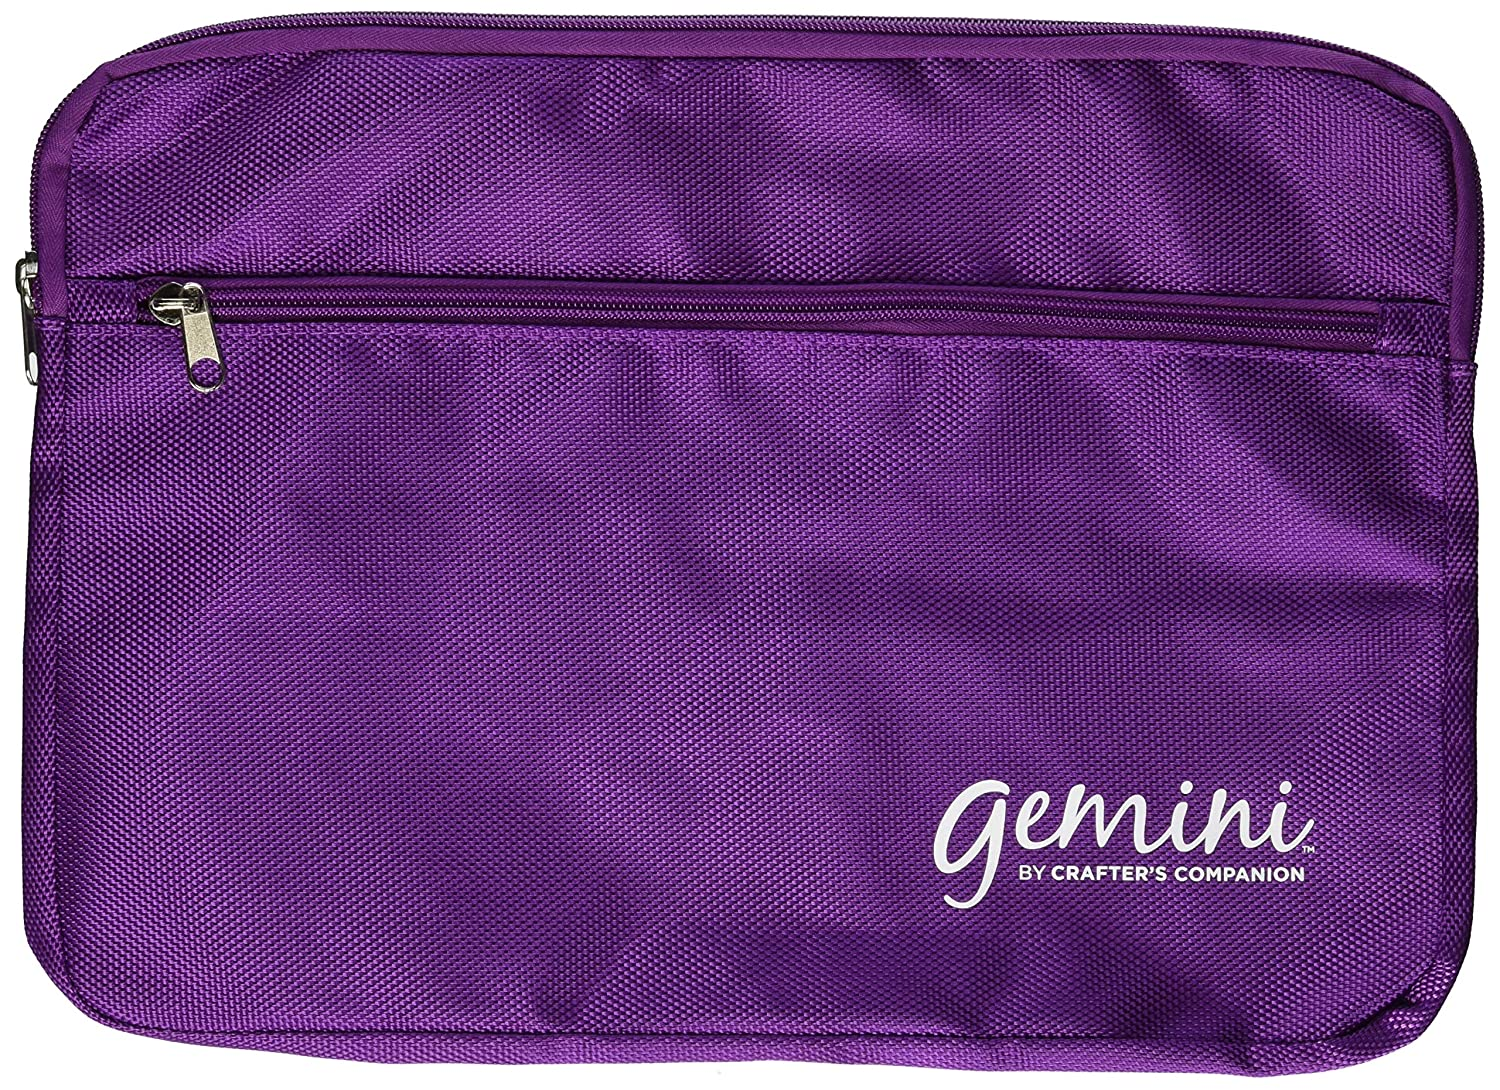 Gemini GEM-Acc-PSB Plate Bag Die Cutting Machine Accessory, Purple Crafter's Companion